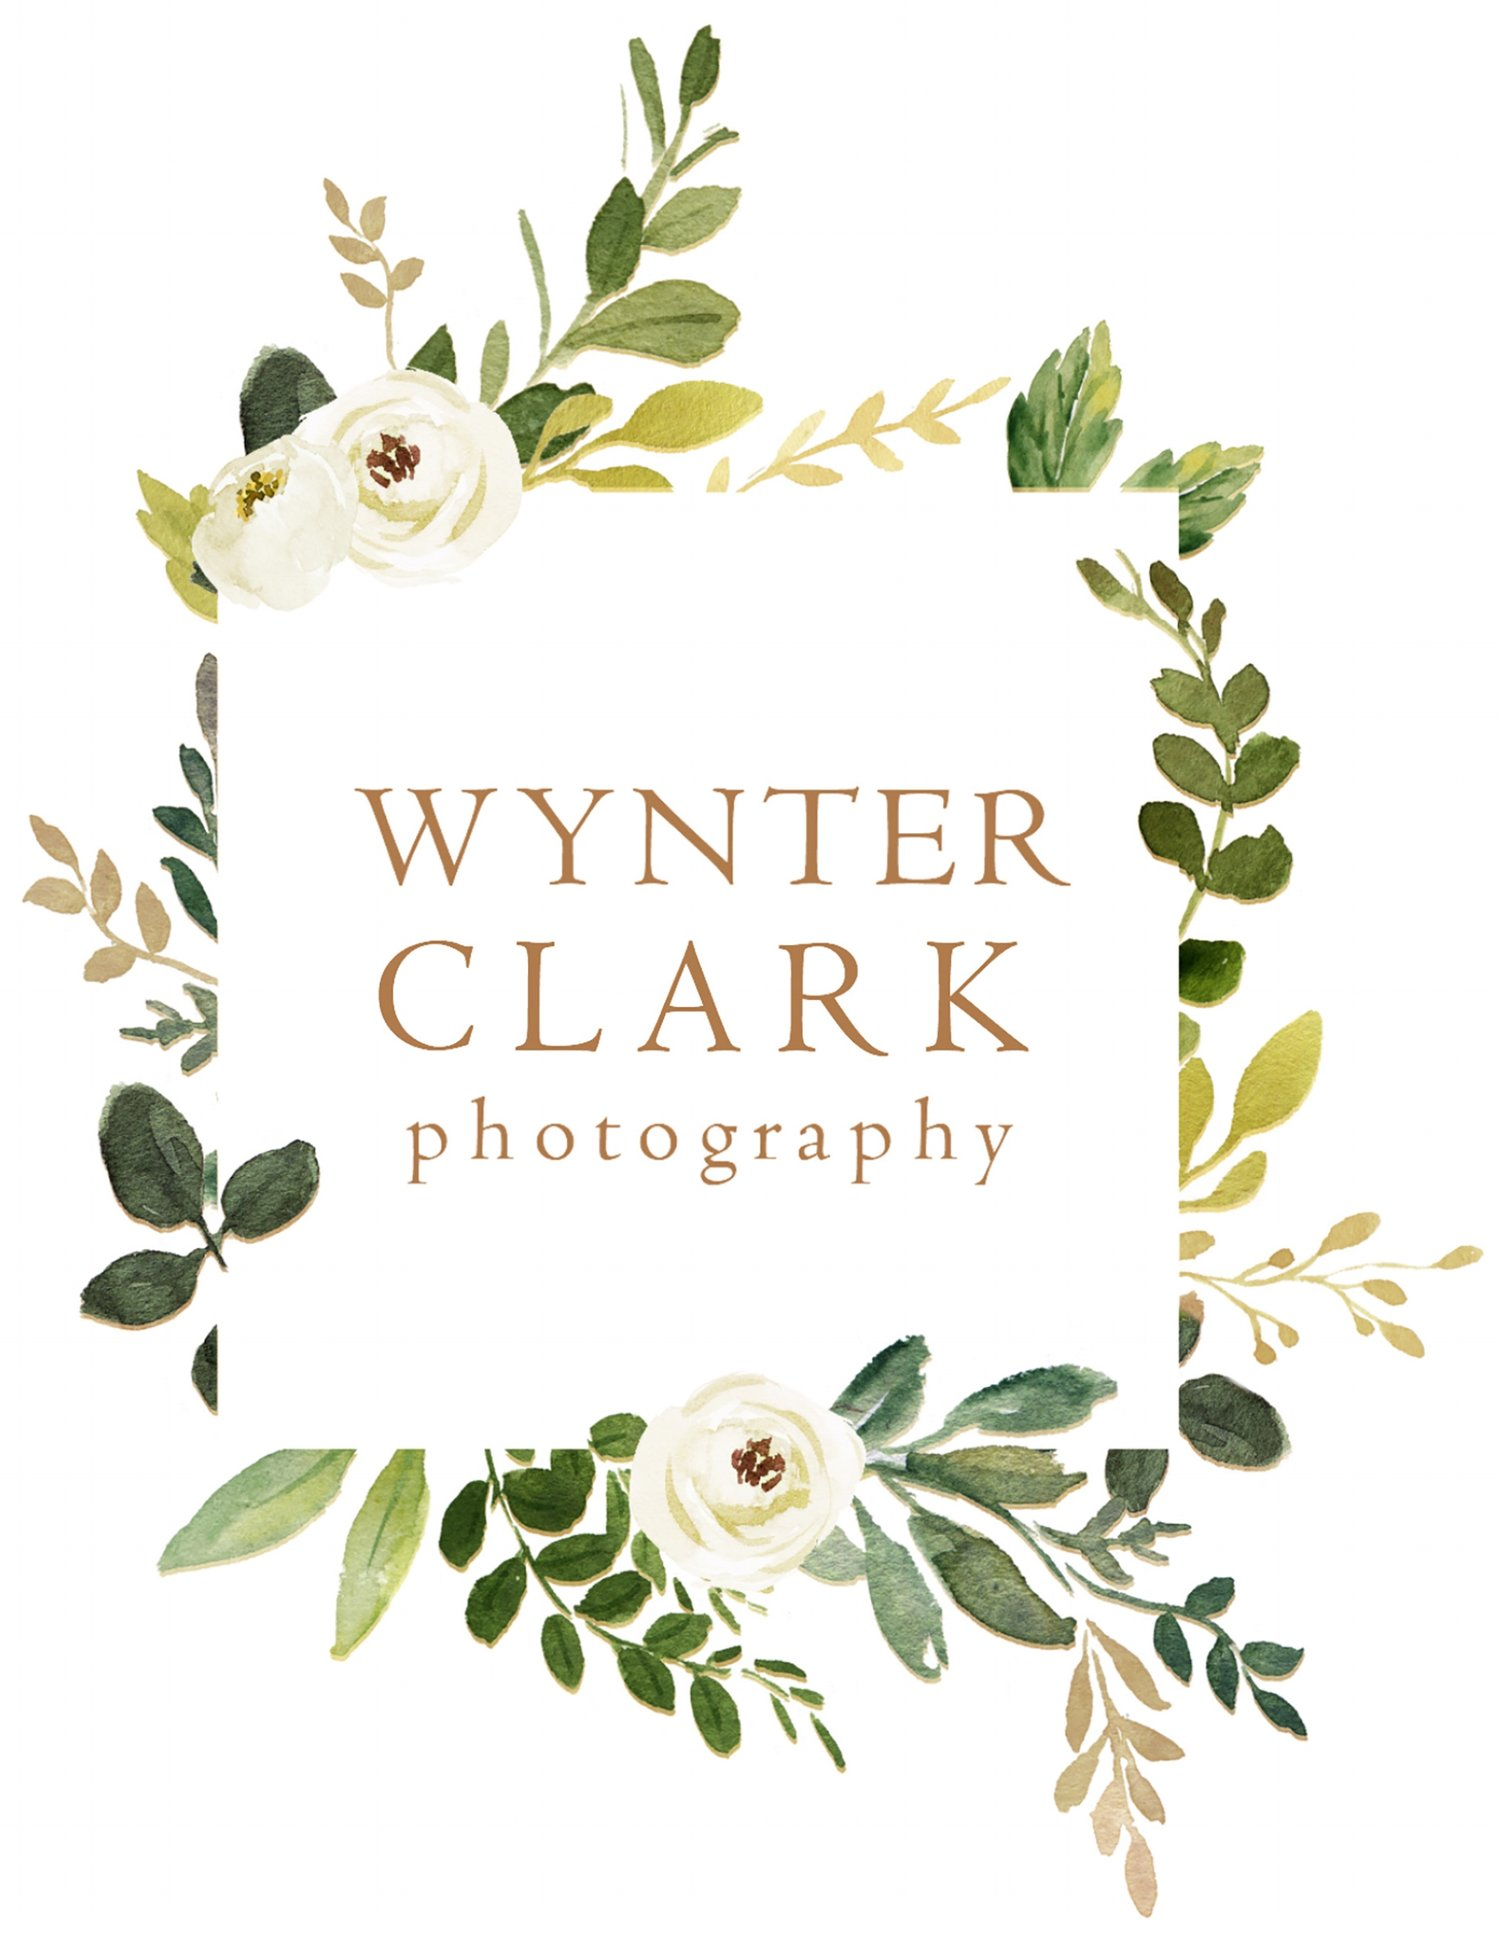 Wynter Clark Photography